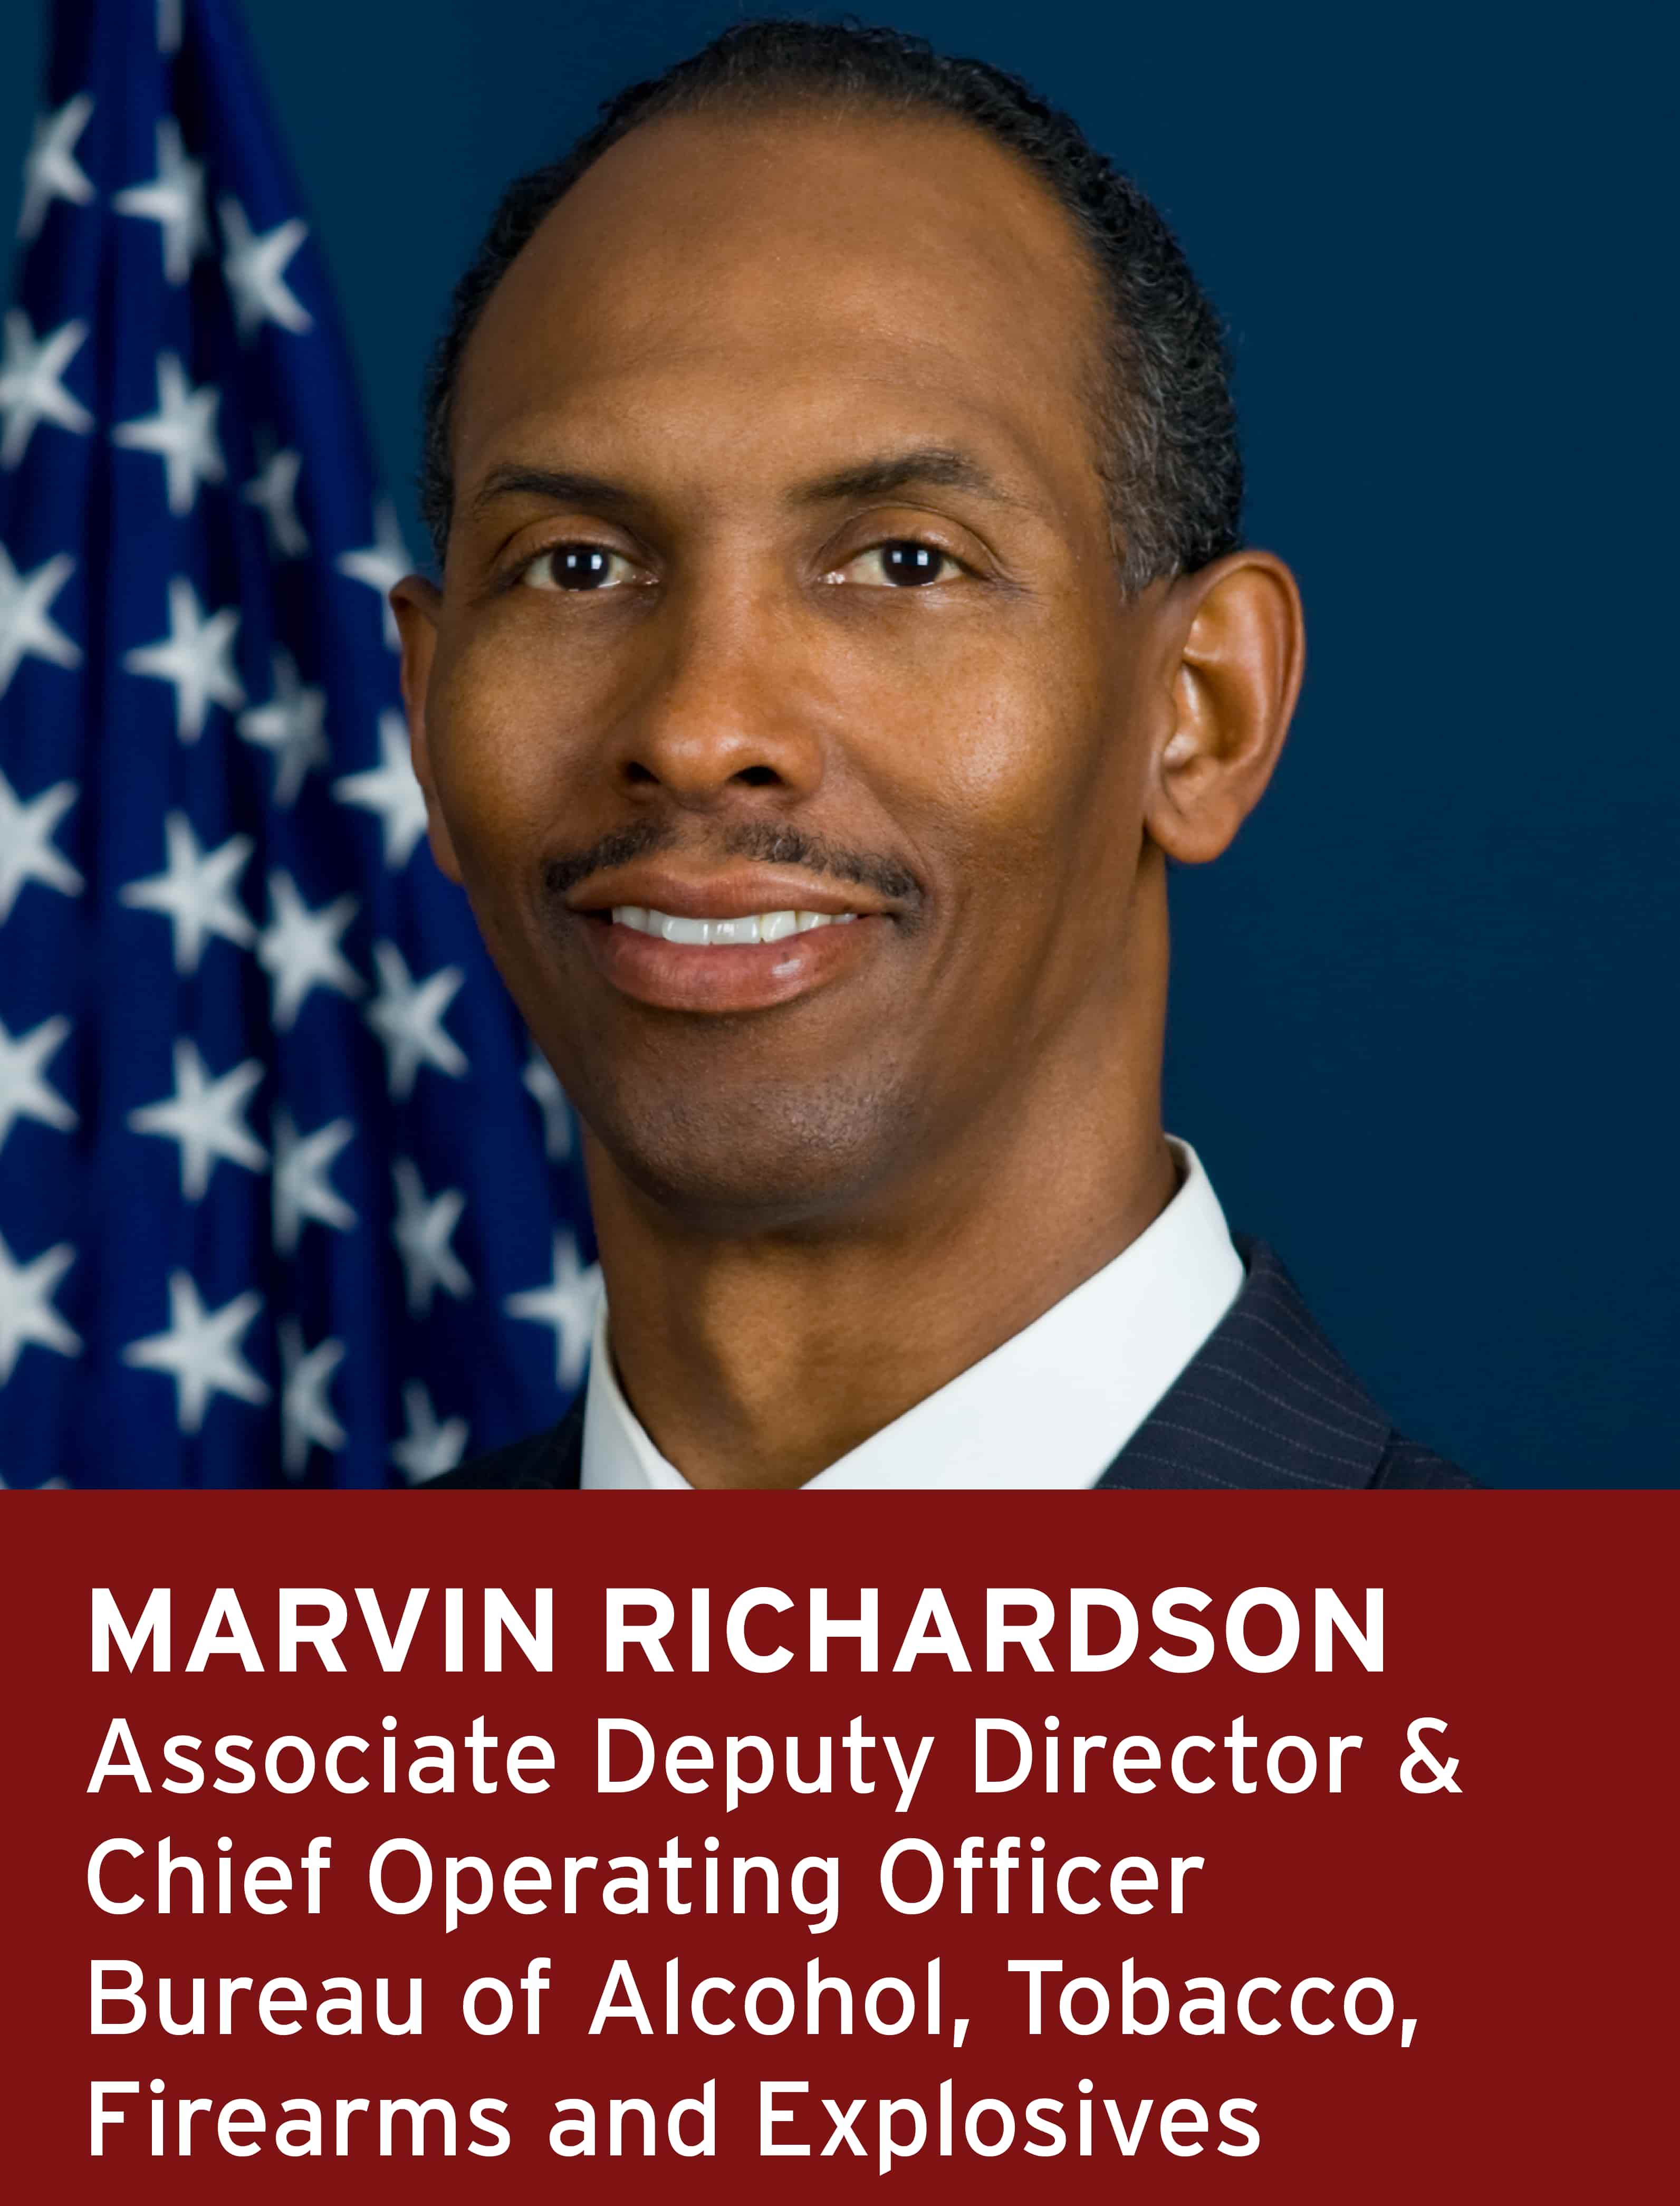 Marvin Richardson, Associate Deputy Director & Chief Operating Officer, Bureau of Alcohol, Tobacco, Firearms and Explosives